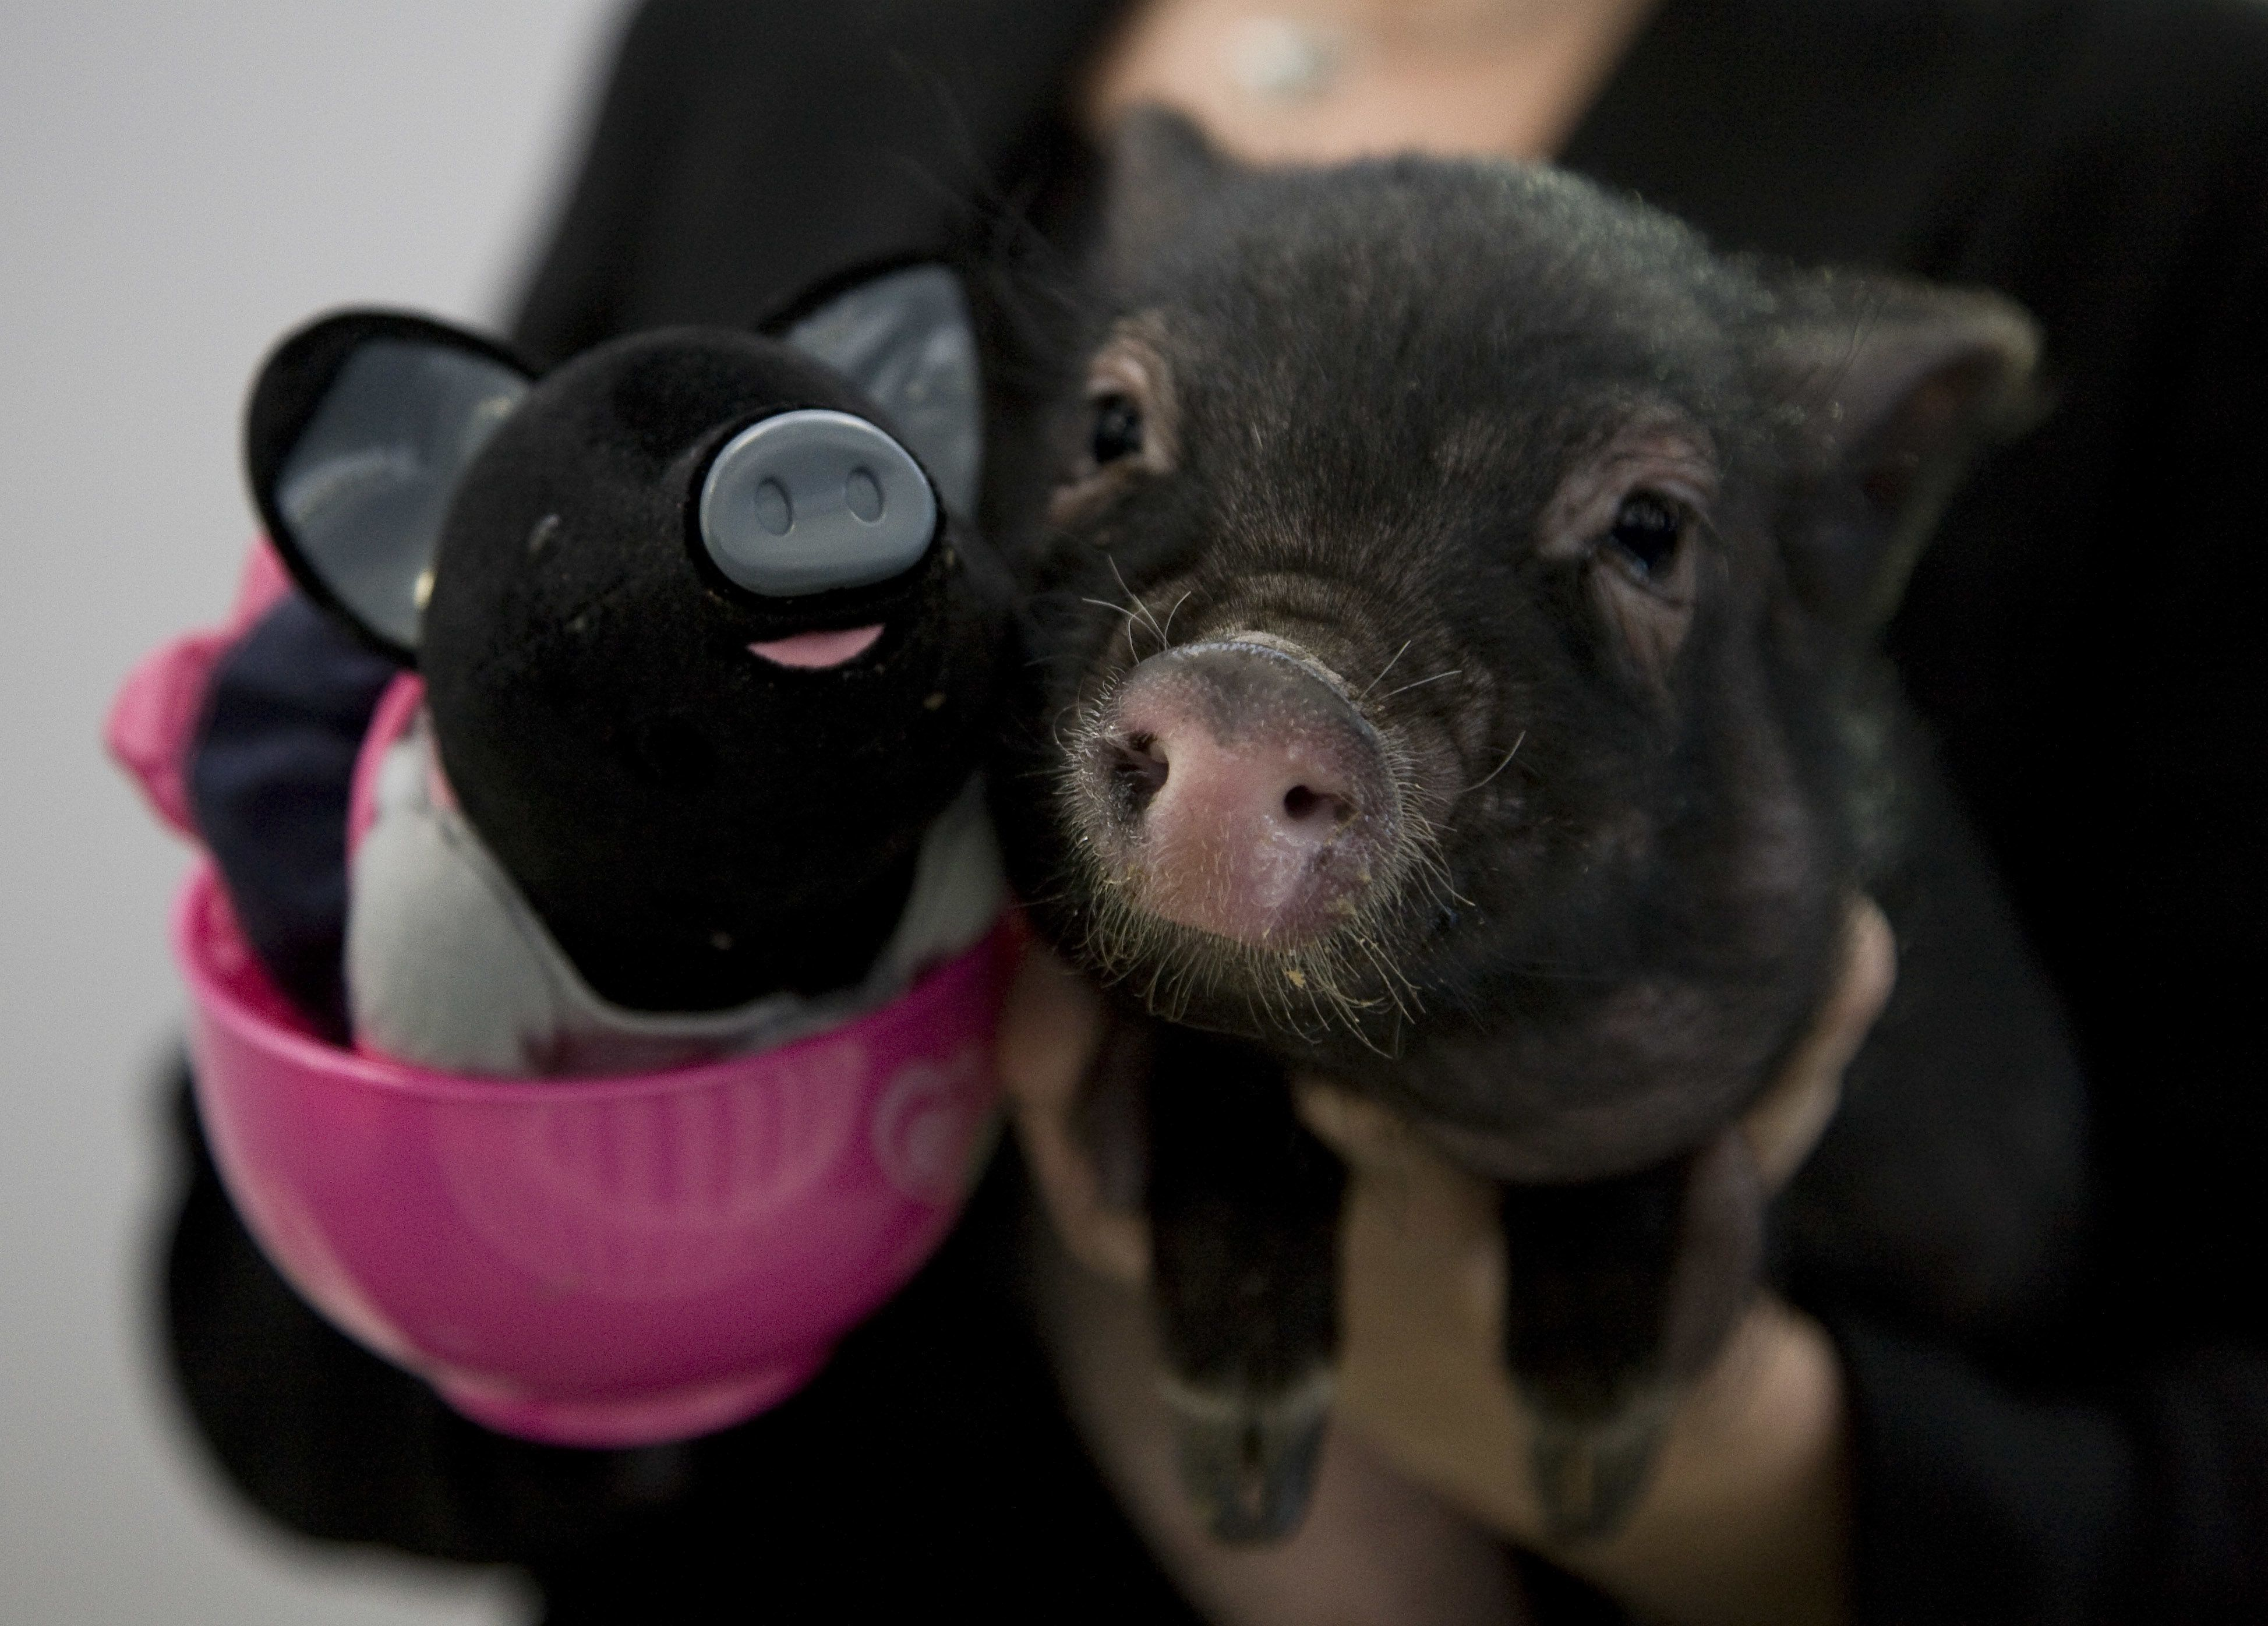 "<span class='image-component__caption' itemprop=""caption"">BGI's genetically engineered pigs are not to be confused with teacup pigs (pictured above, on the right), which, according to The Dodo, are <a href=""https://www.thedodo.com/whats-misleading-about-the-tea-843842300.html"">actually stunted potbellied pigs</a>.</span>"